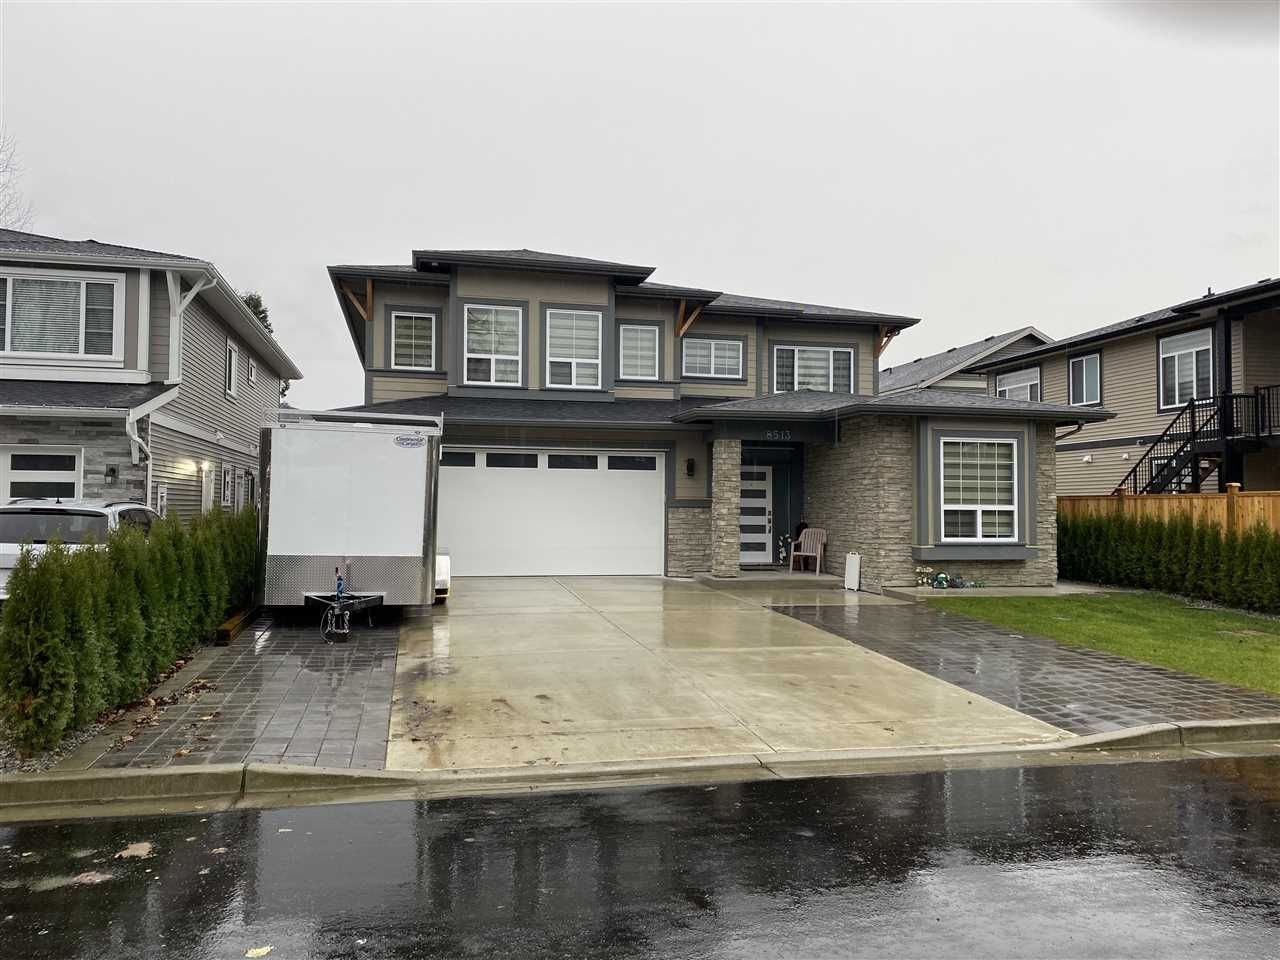 Main Photo: 8513 LEGACE Drive in Mission: Mission BC House for sale : MLS®# R2513467